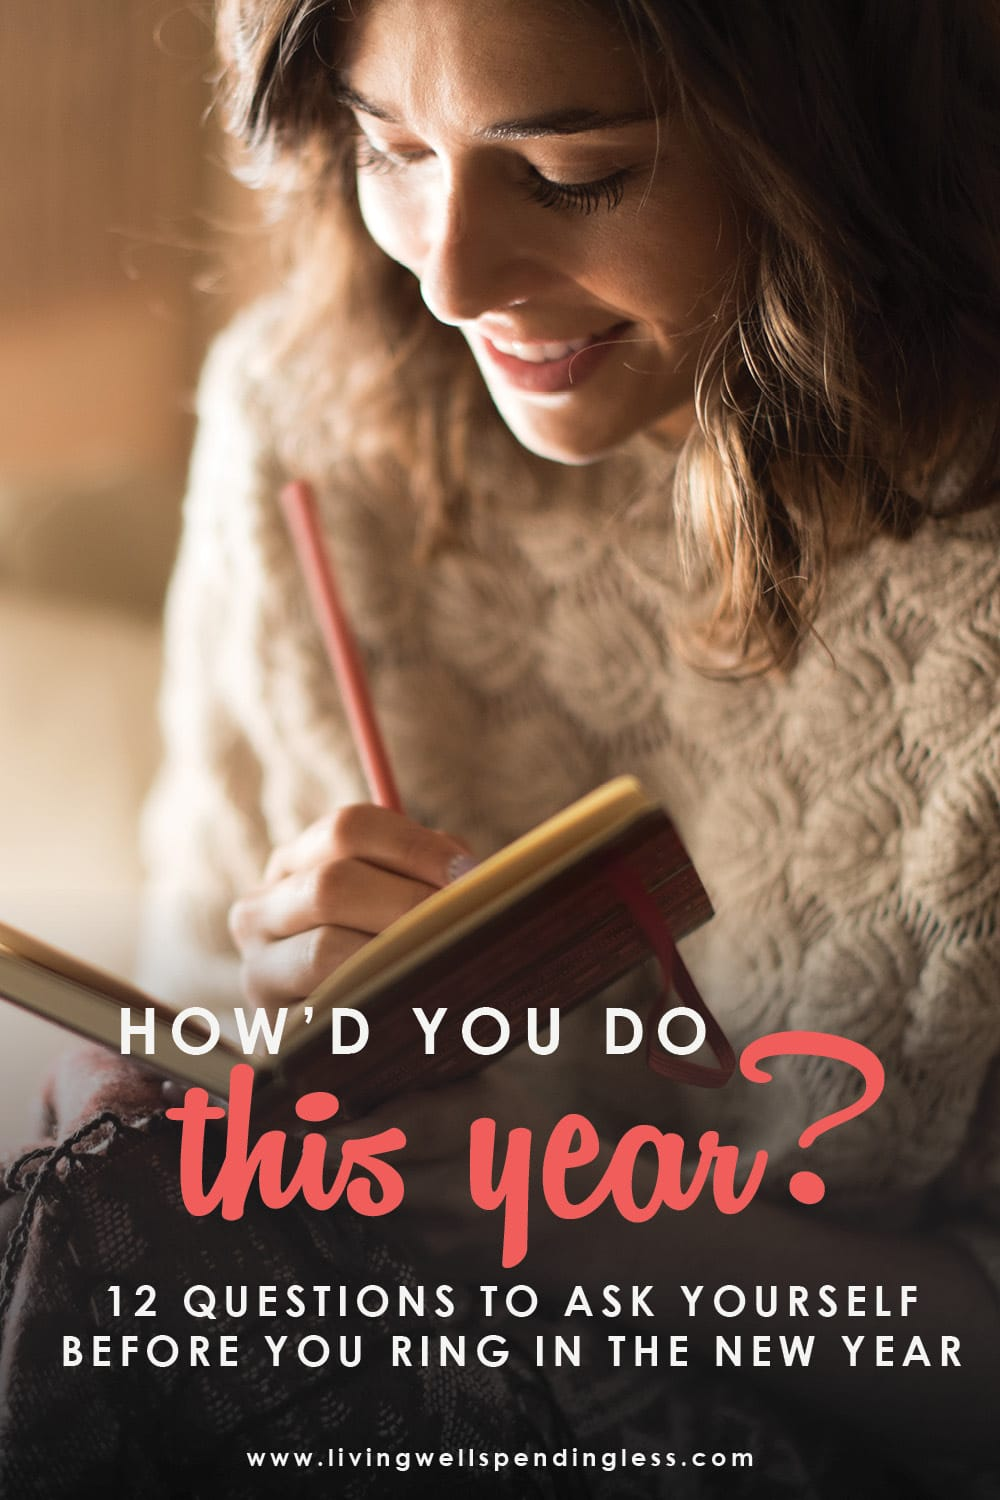 It's almost the close of another year....and another decade! So what did you learn in the last year? Before you move on to bigger and better things, reflecting on and reviewing your year is a smart way to get closure and perspective. Here are 12 questions to ask yourself before December 31st. #yearinreview #endofyear #reflecting #productivity #goalsetting #timemanagement